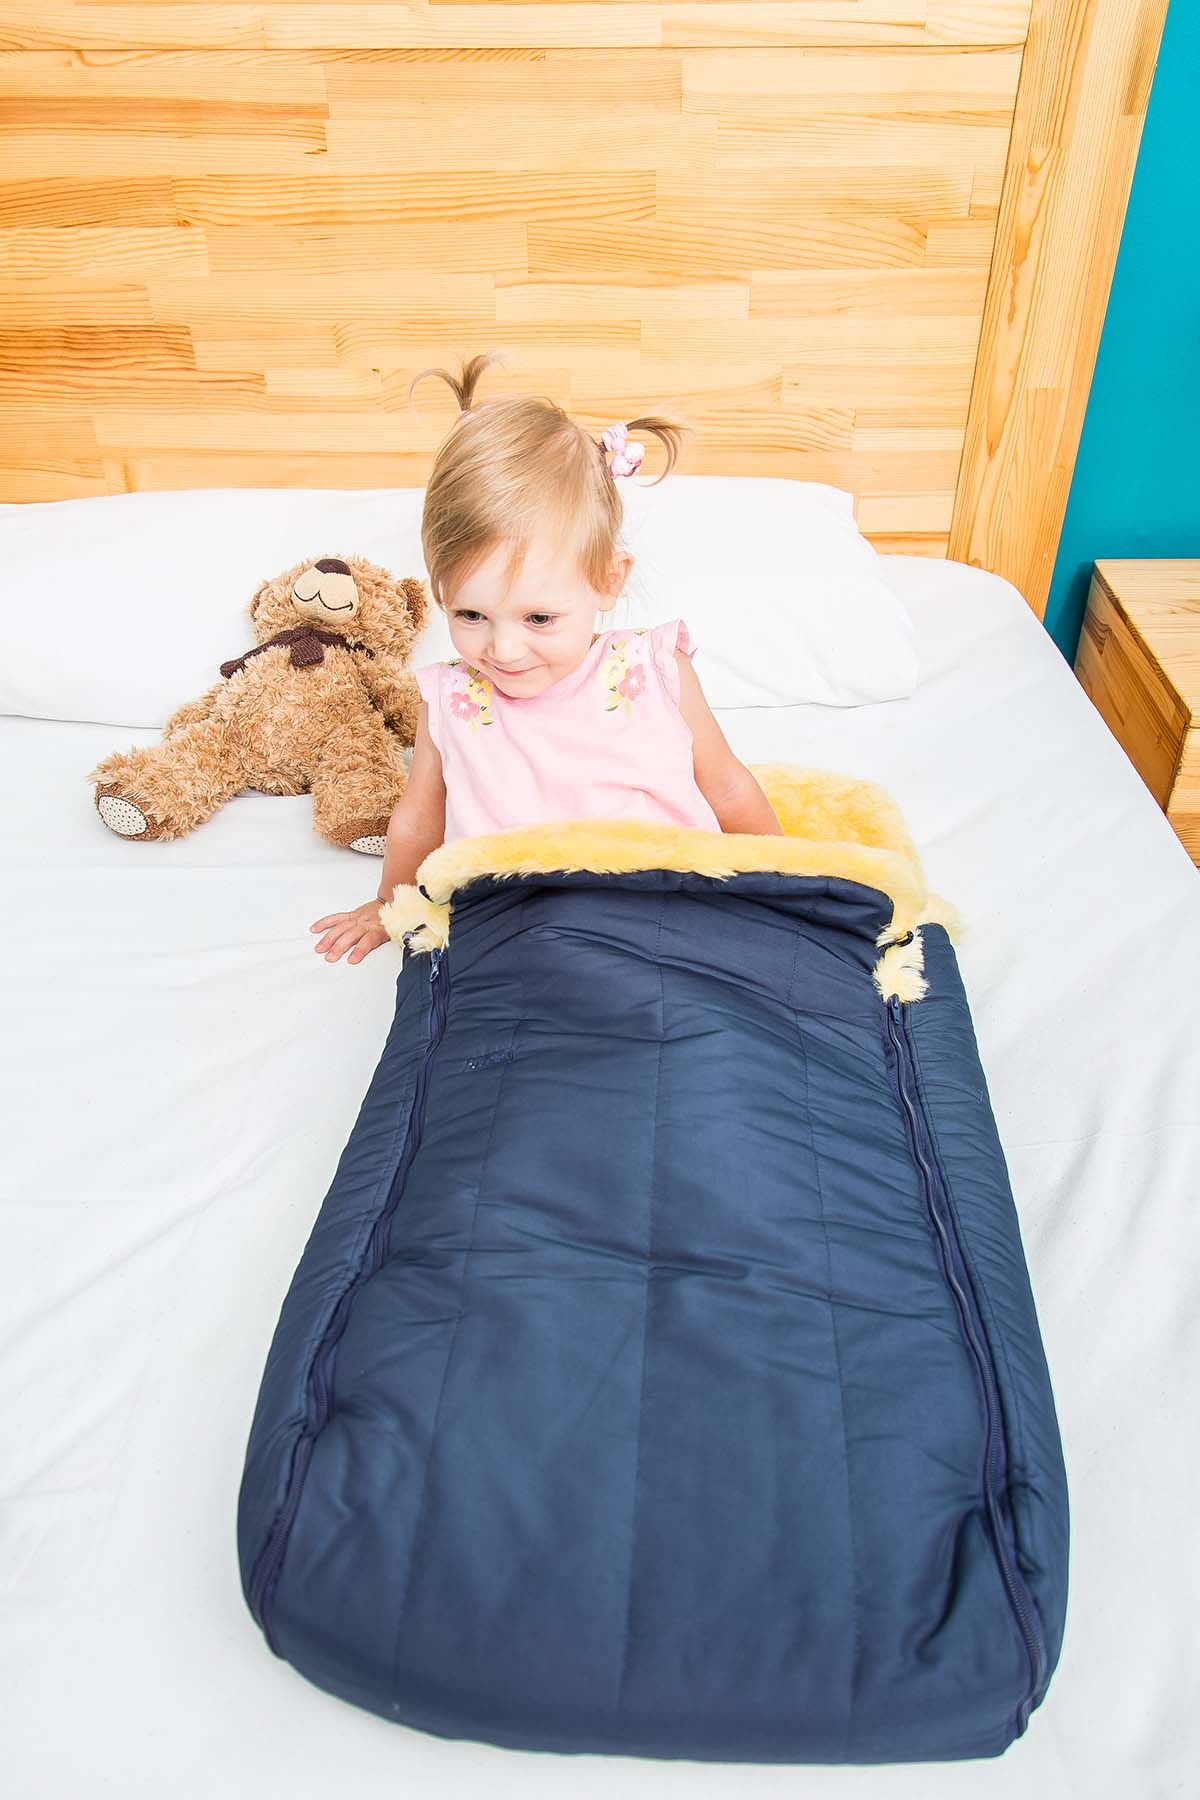 Sheepy Care Double Zippered Baby Sleeping Bag MDK011 Navy blue